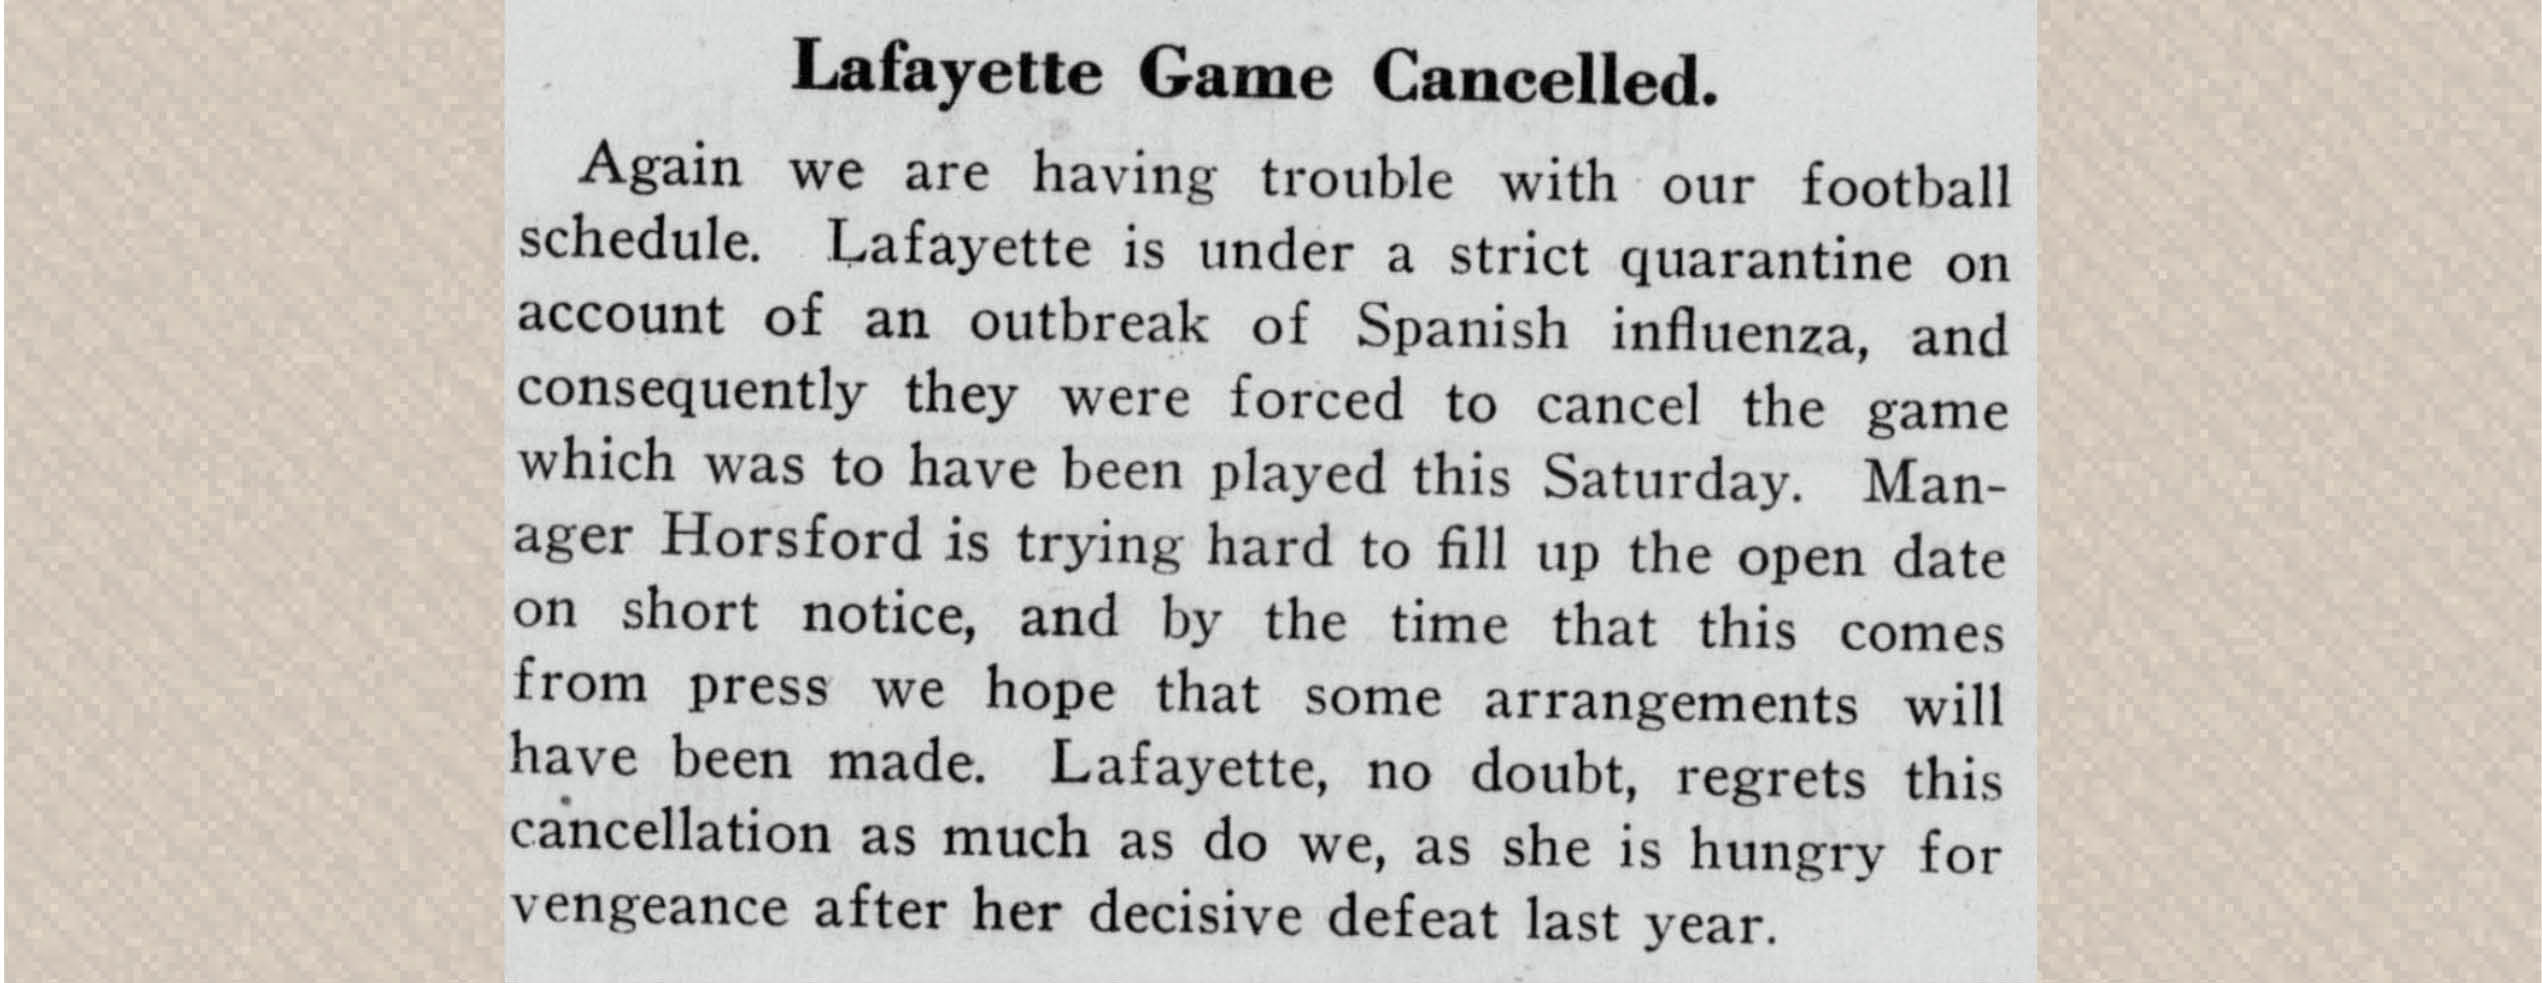 press clipping: Lafayette Game Cancelled (pg43 The Targum (October 9, 1918),  )